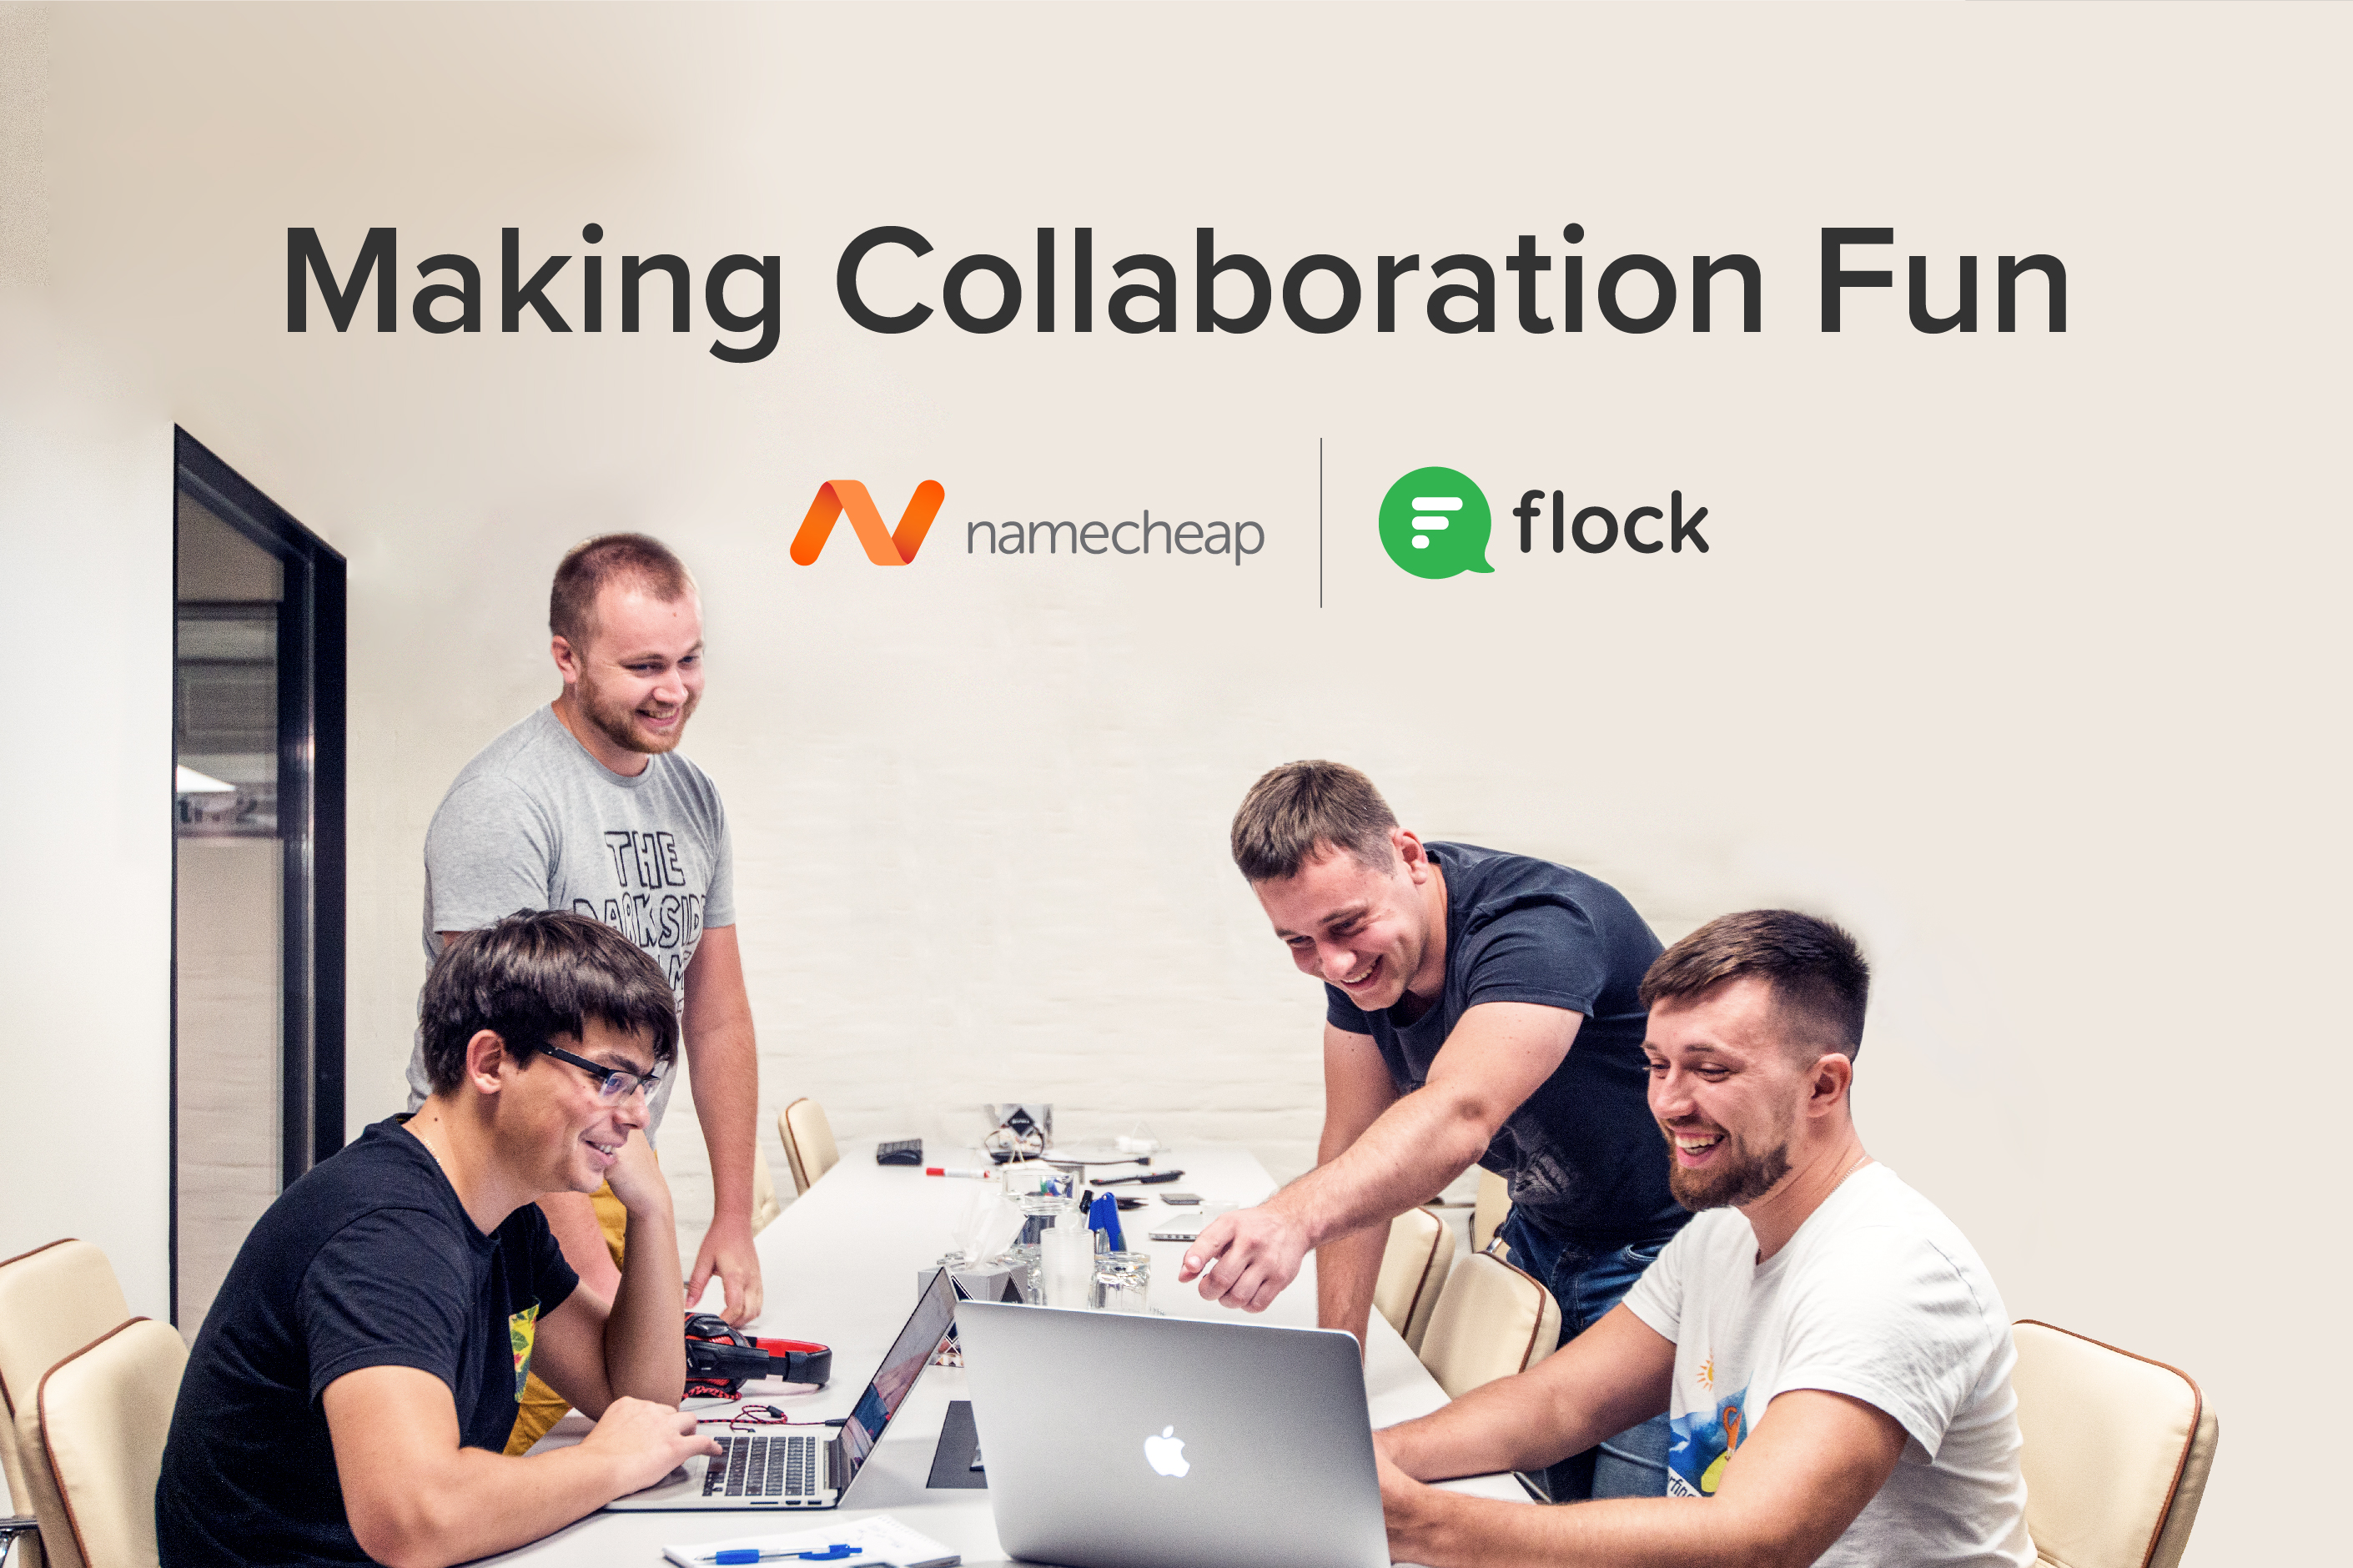 HipChat to Flock: Here's how the global team at Namecheap does great work from their virtual office while having fun